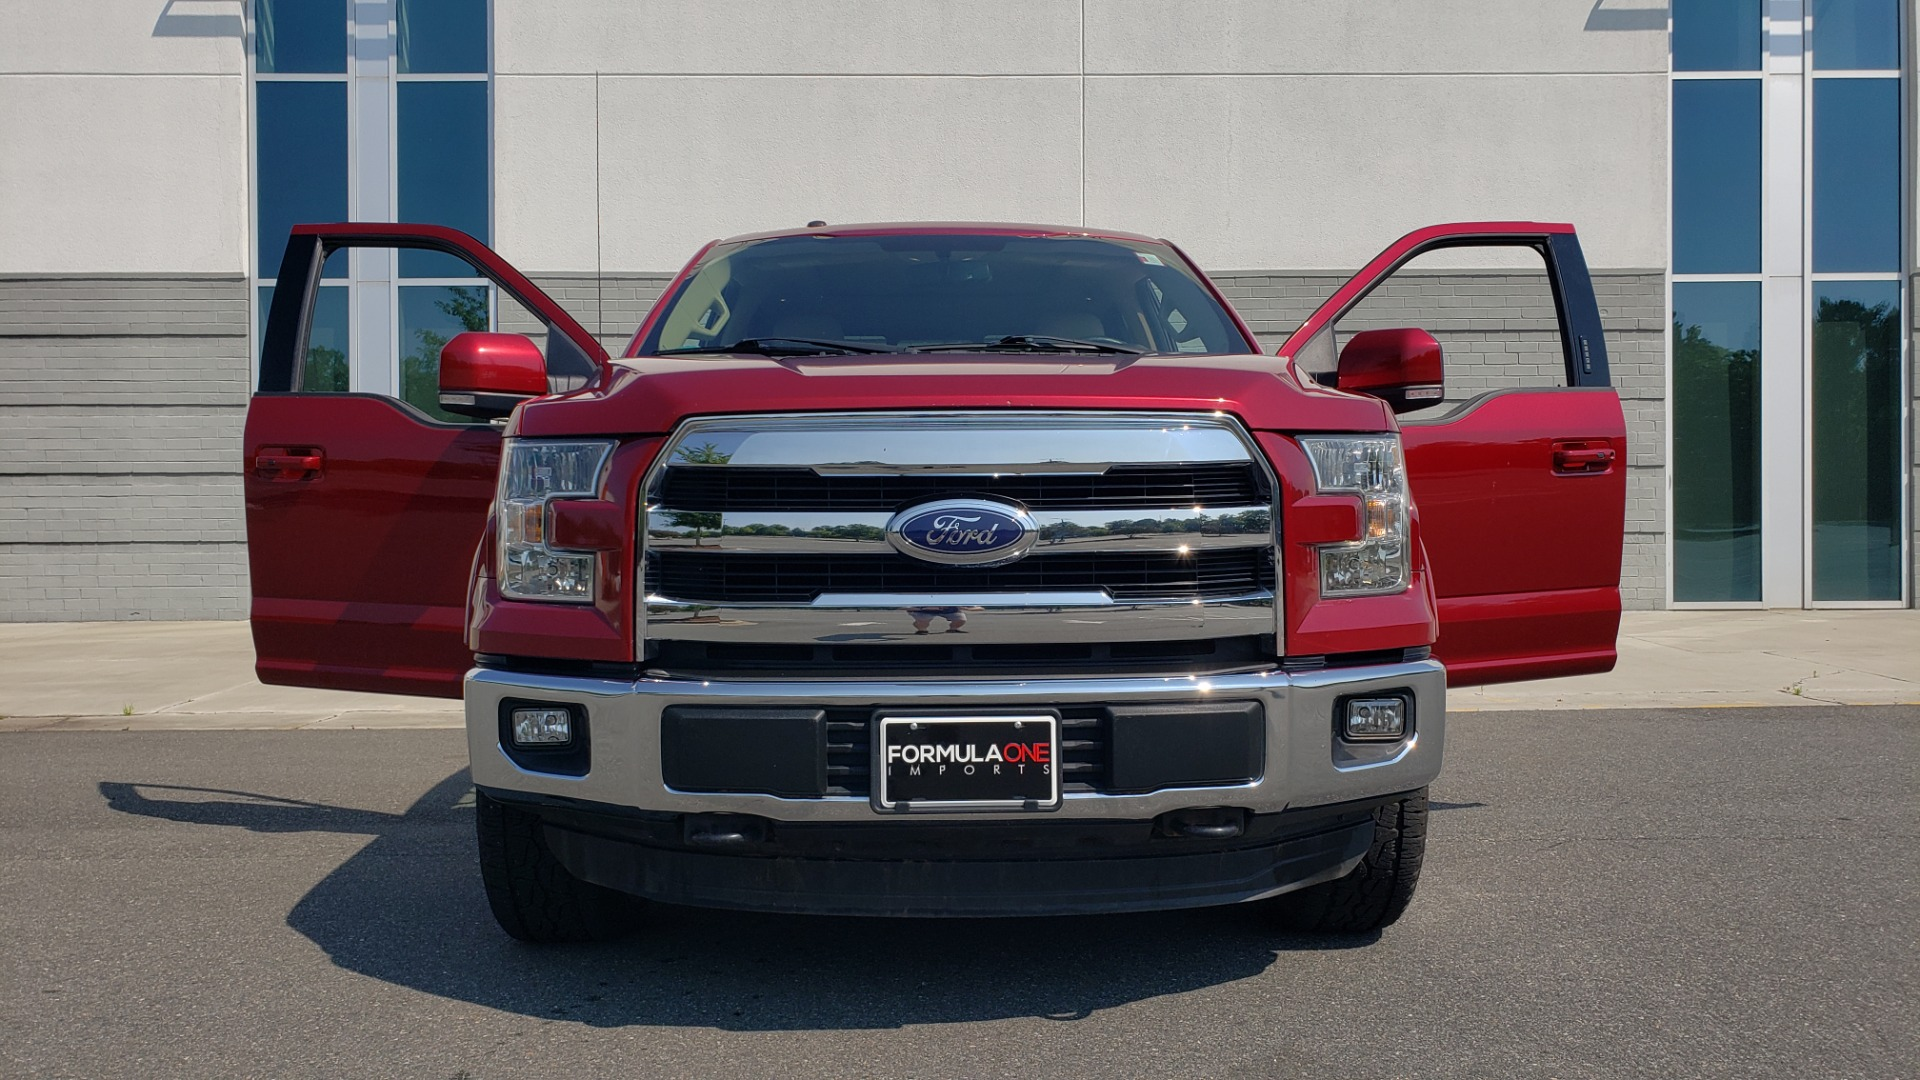 Used 2015 Ford F-150 LARIAT 4X4 SUPERCREW / 5.0L V8 / AUTO / NAV / SUNROOF / REARVIEW for sale $33,995 at Formula Imports in Charlotte NC 28227 17